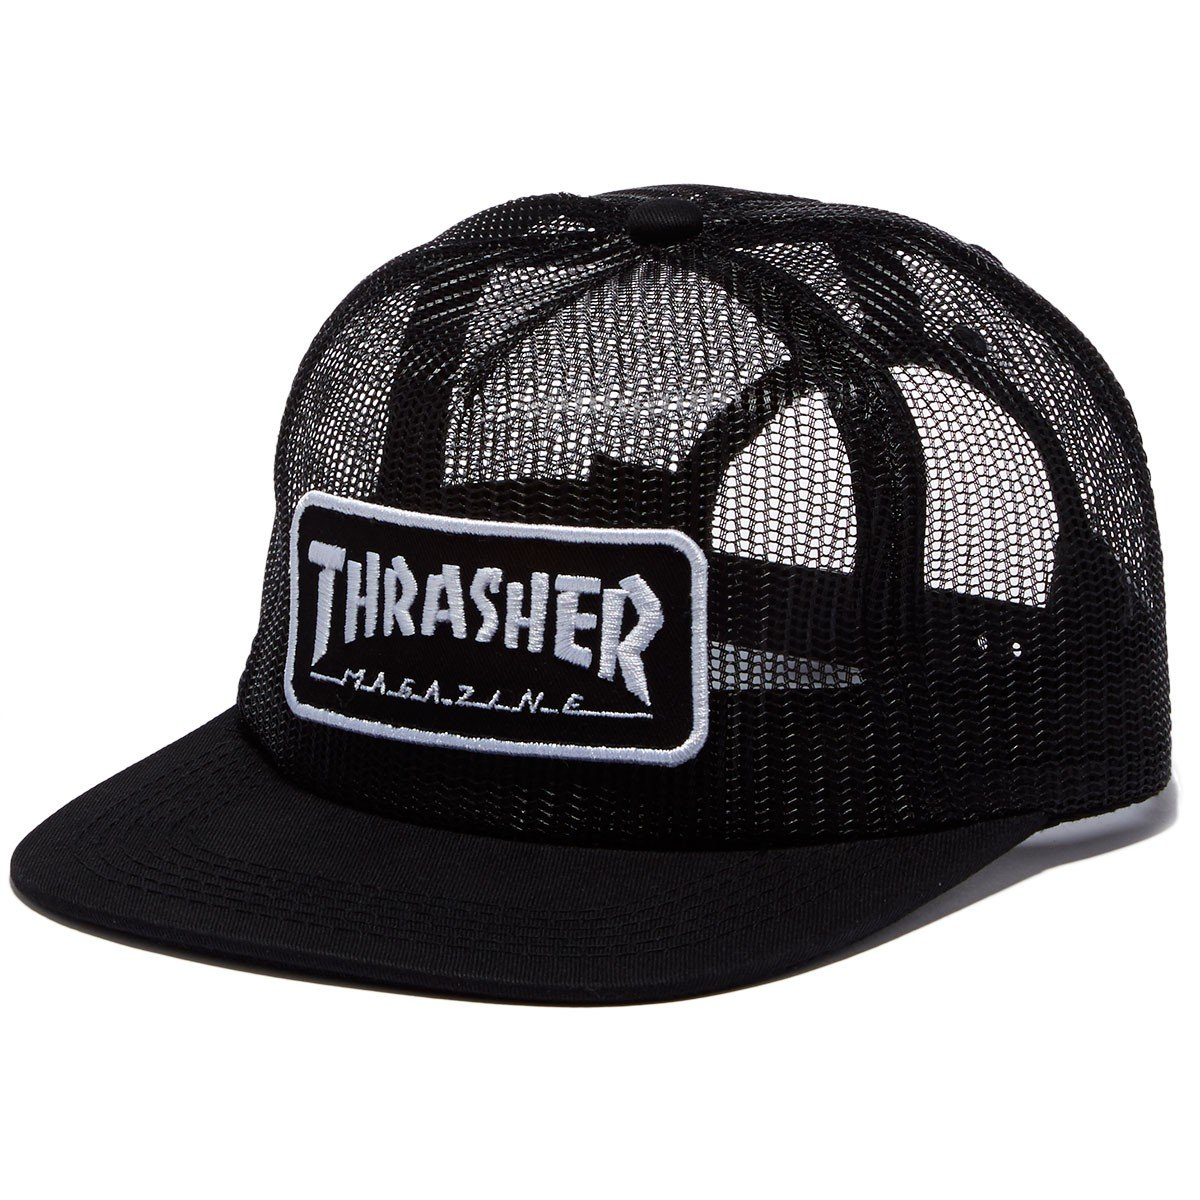 adf056ce16d Thrasher Skategoat Wool Blend Snap Blk black